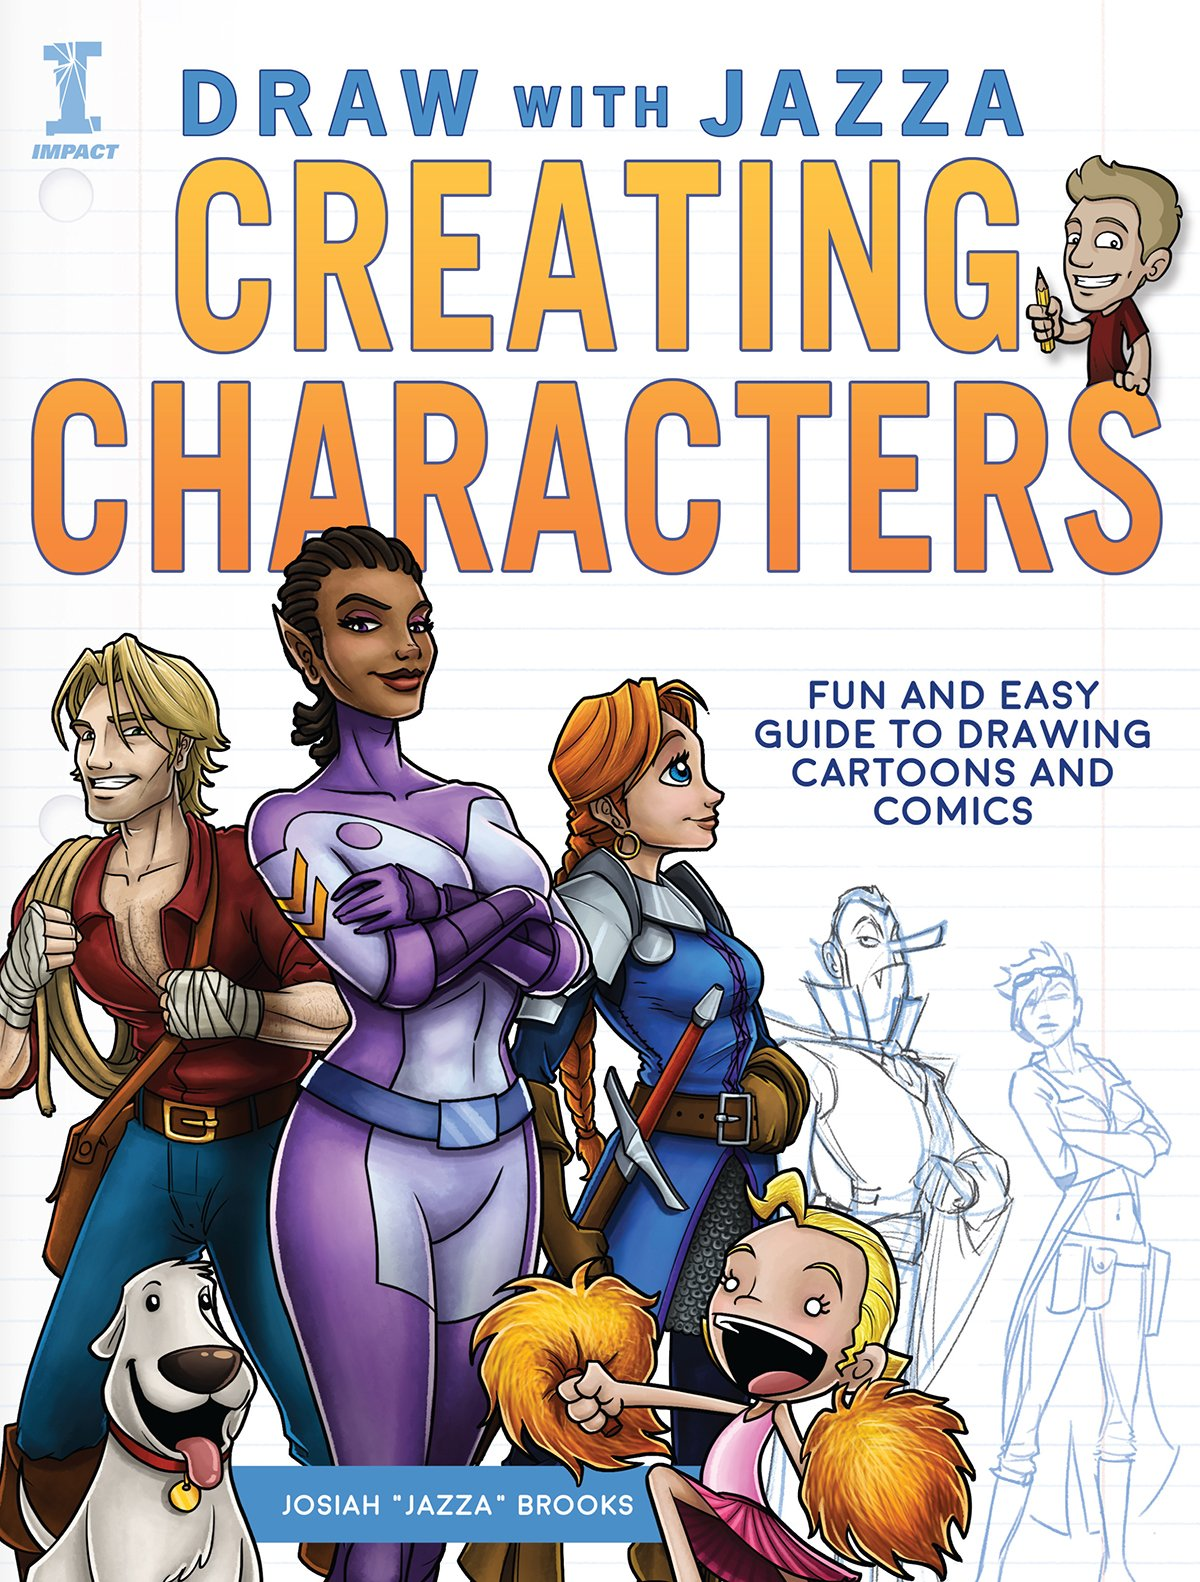 Amazon.com: Draw With Jazza - Creating Characters: Fun and Easy ...